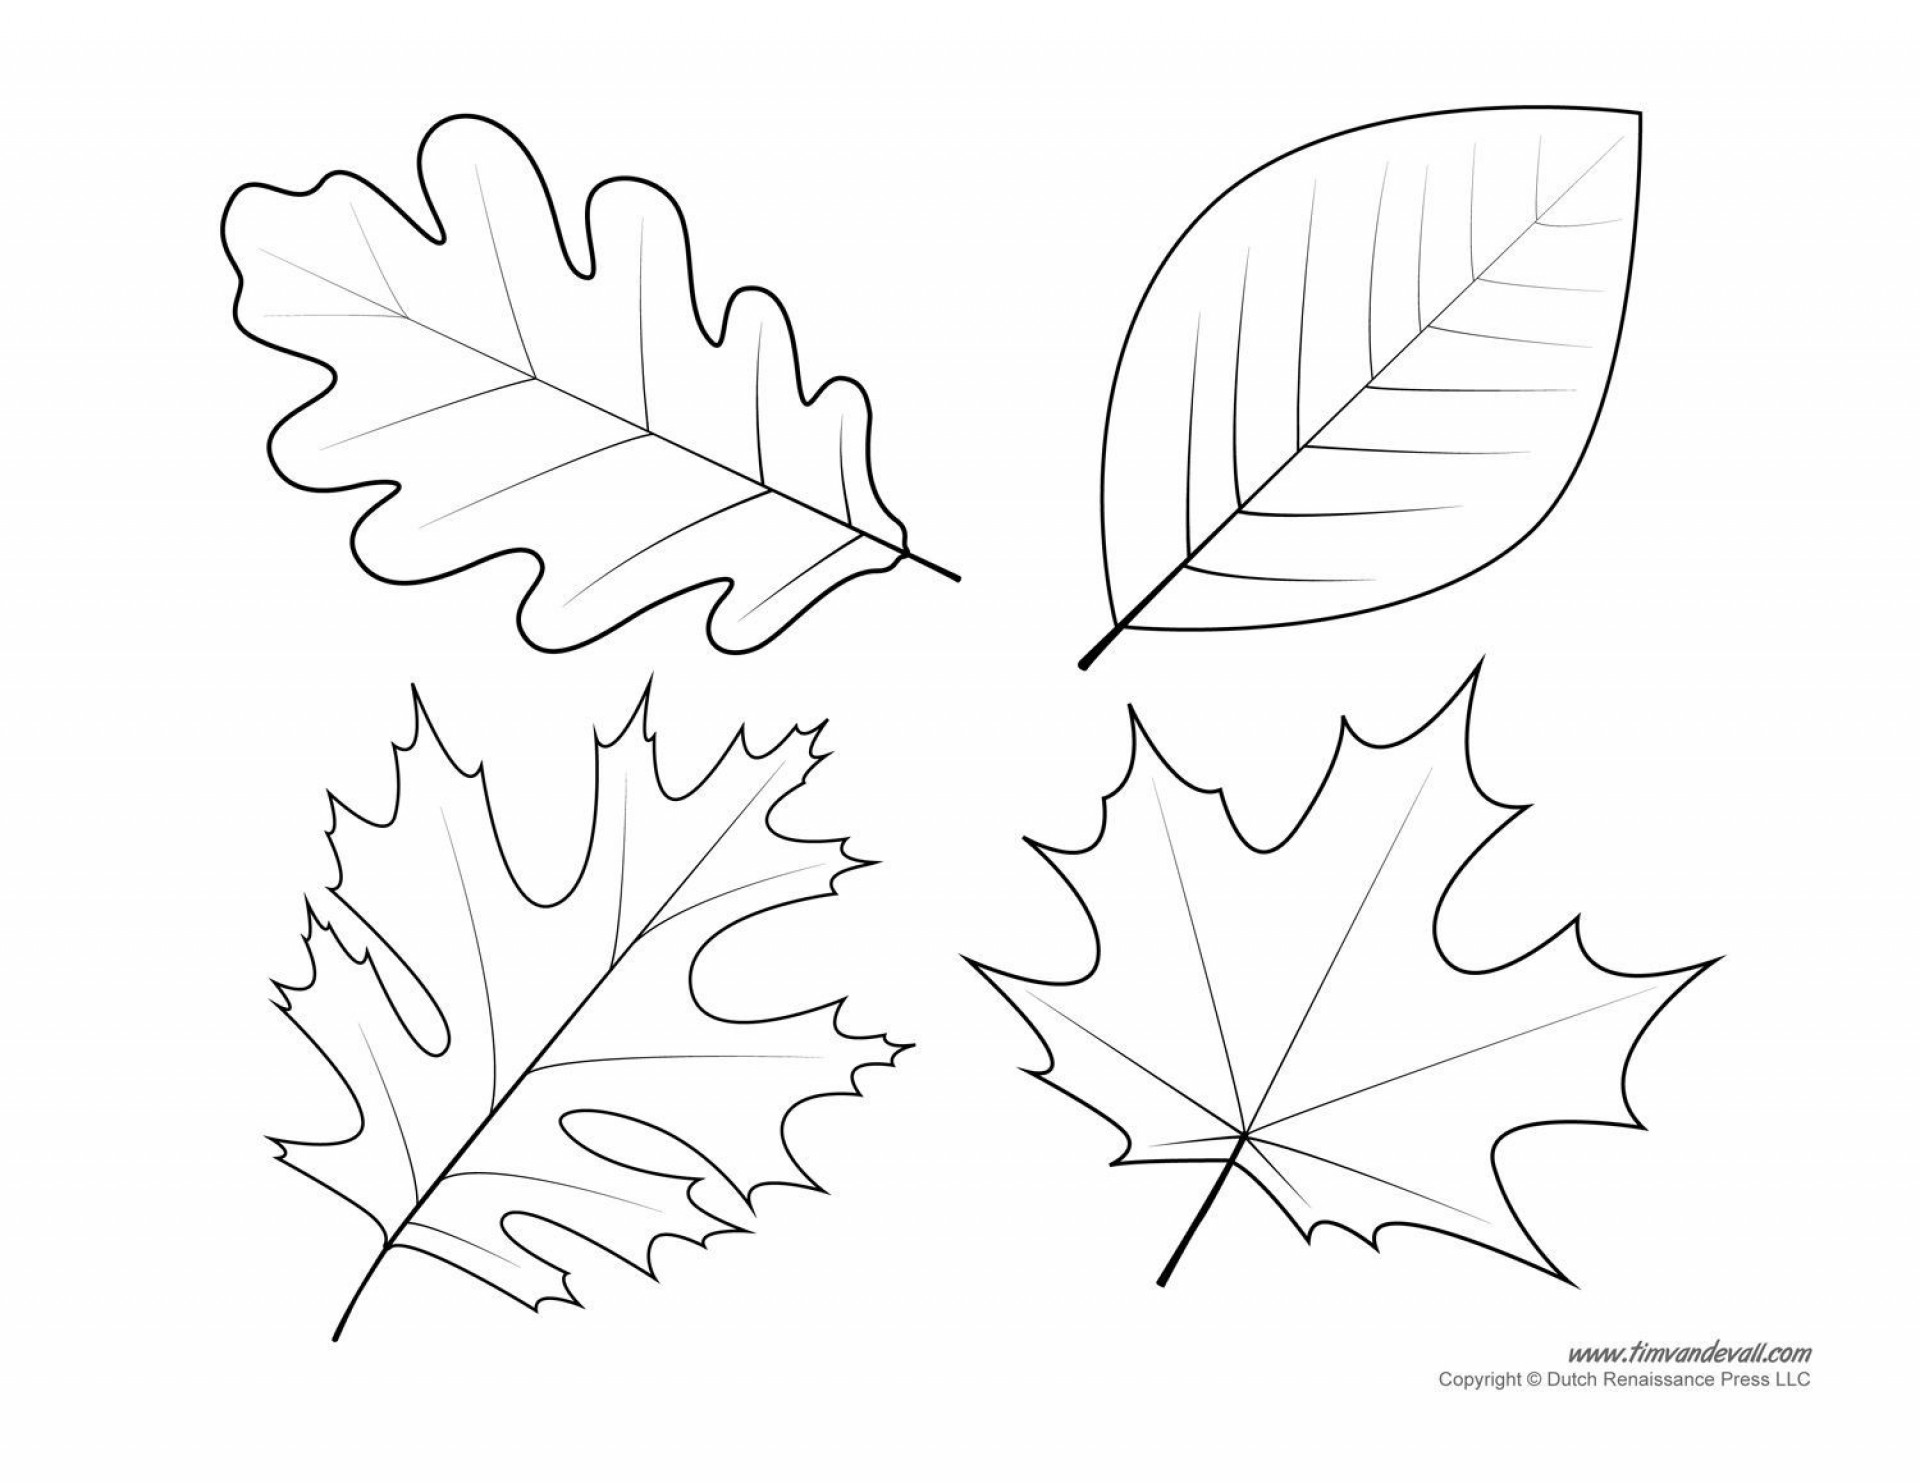 000 Stupendou Blank Leaf Template With Line Inspiration  Lines Printable1920